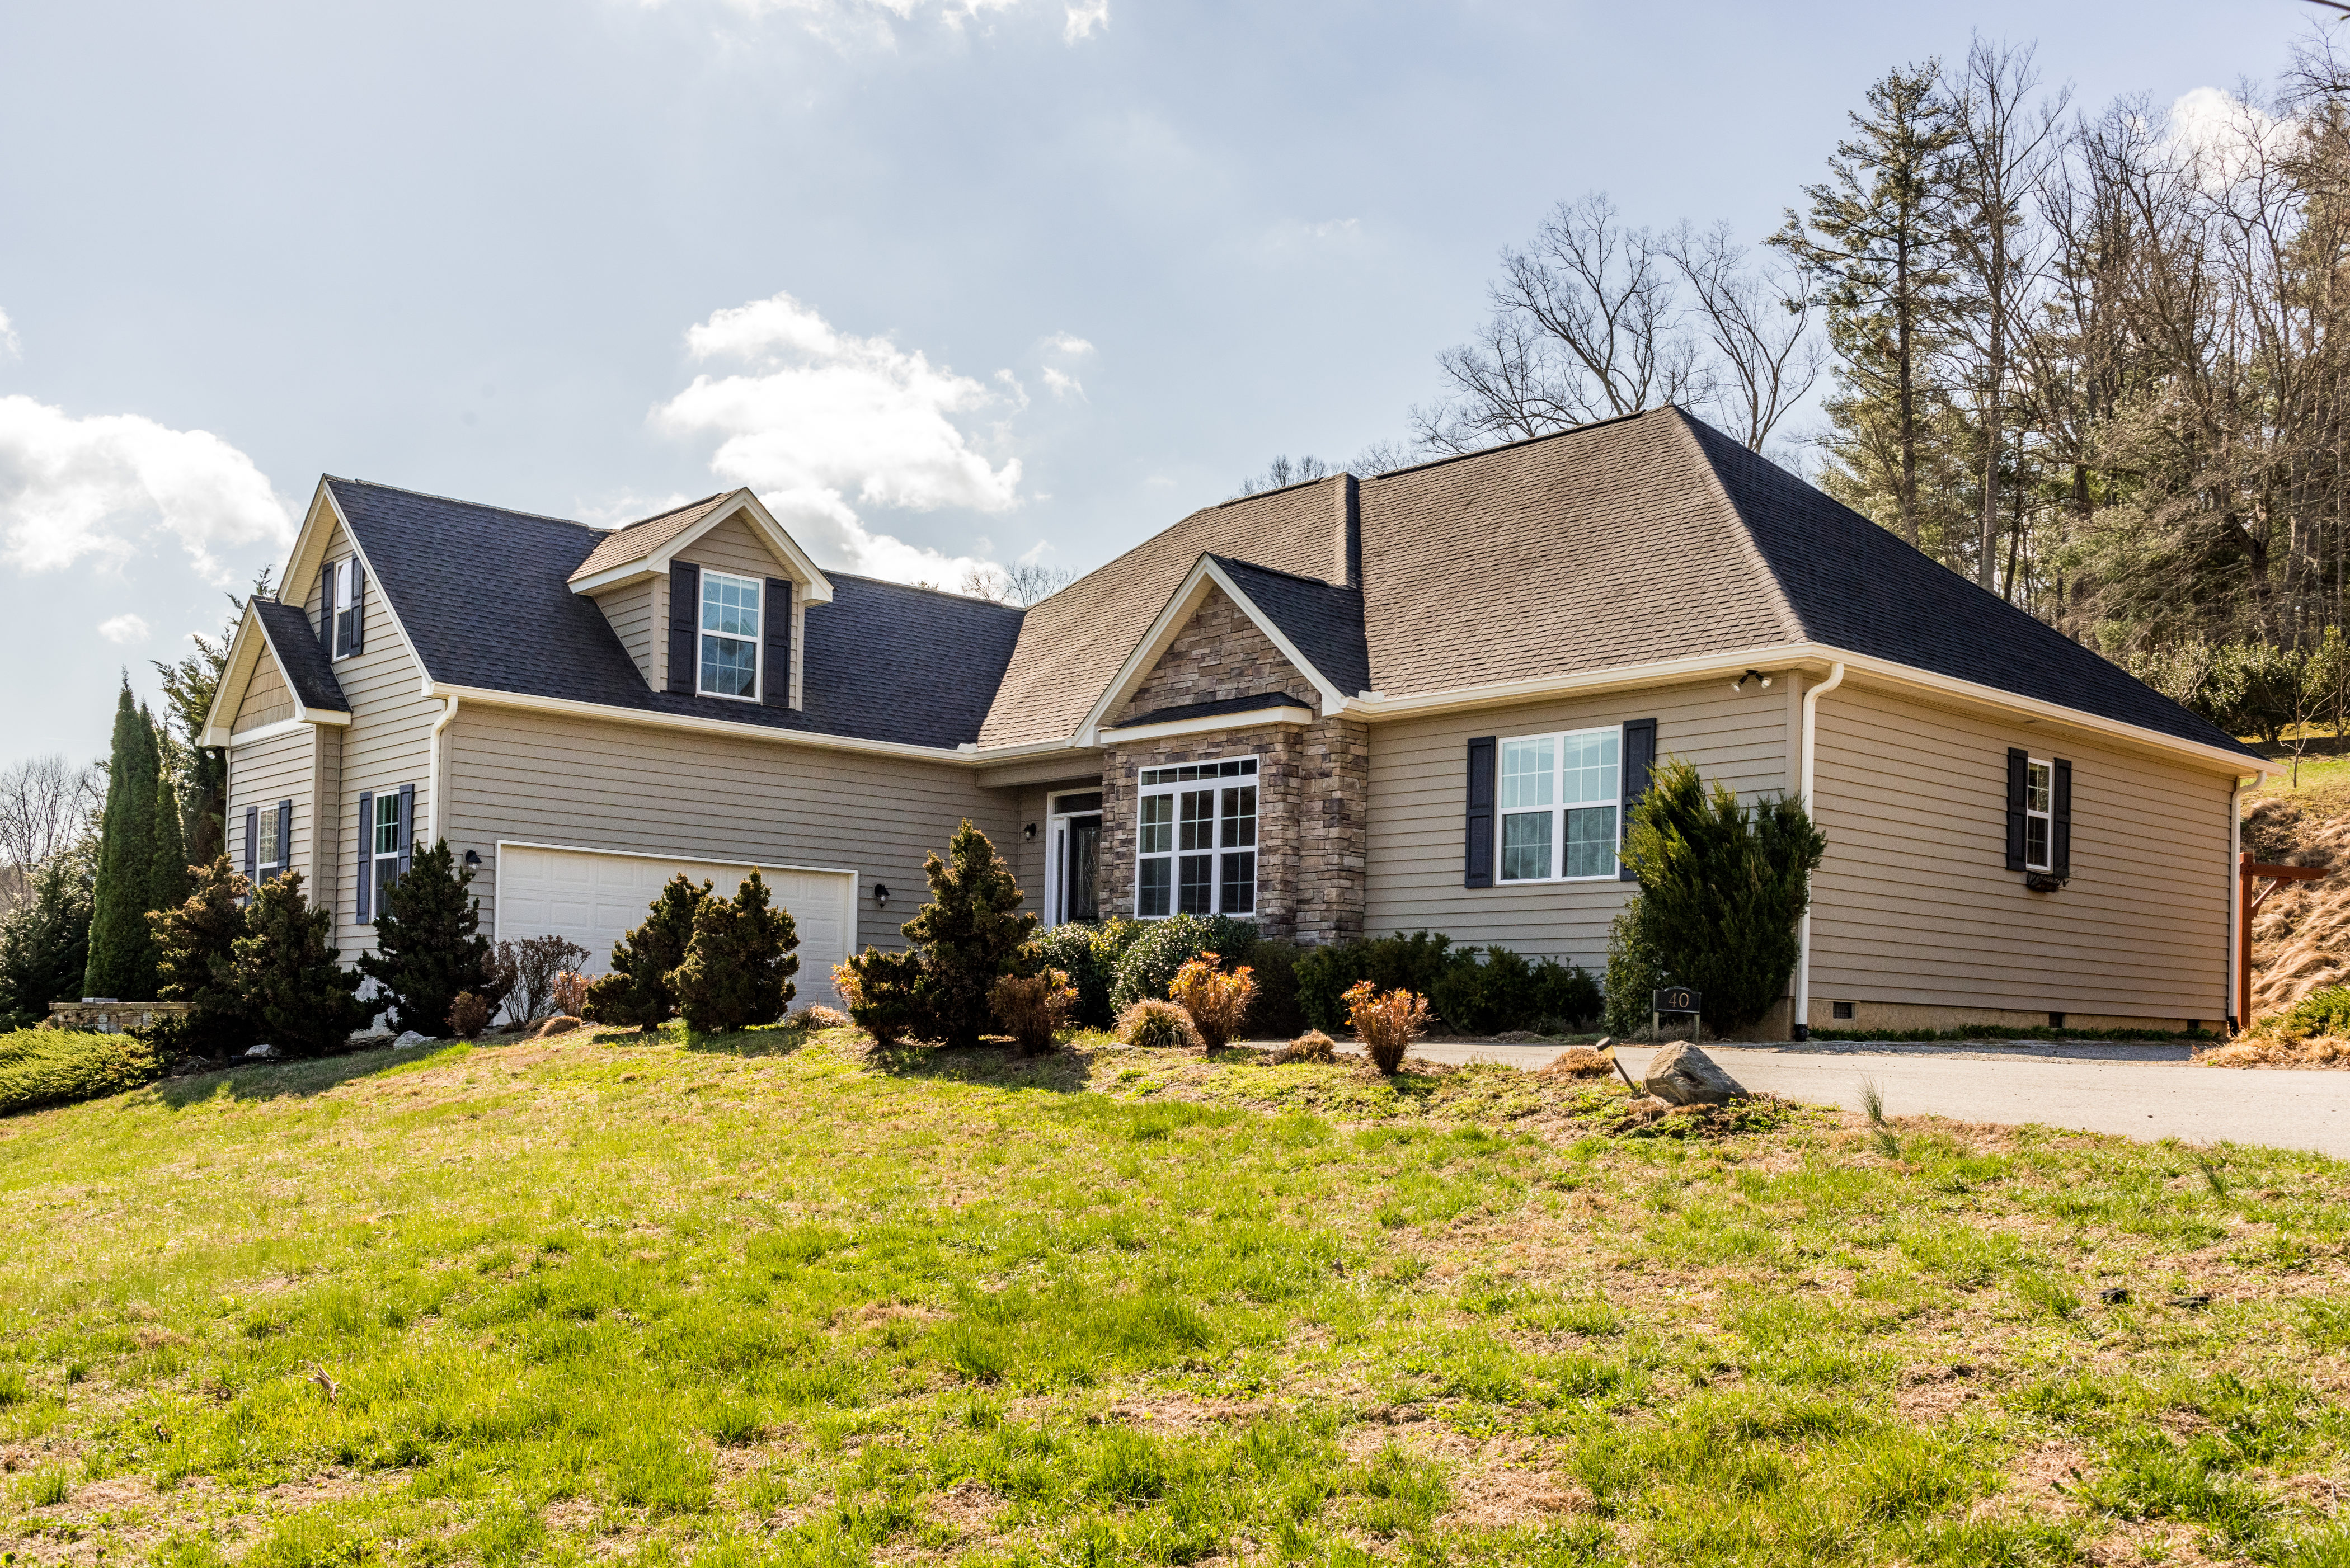 Fairview NC Vacation Rental Welcome to your